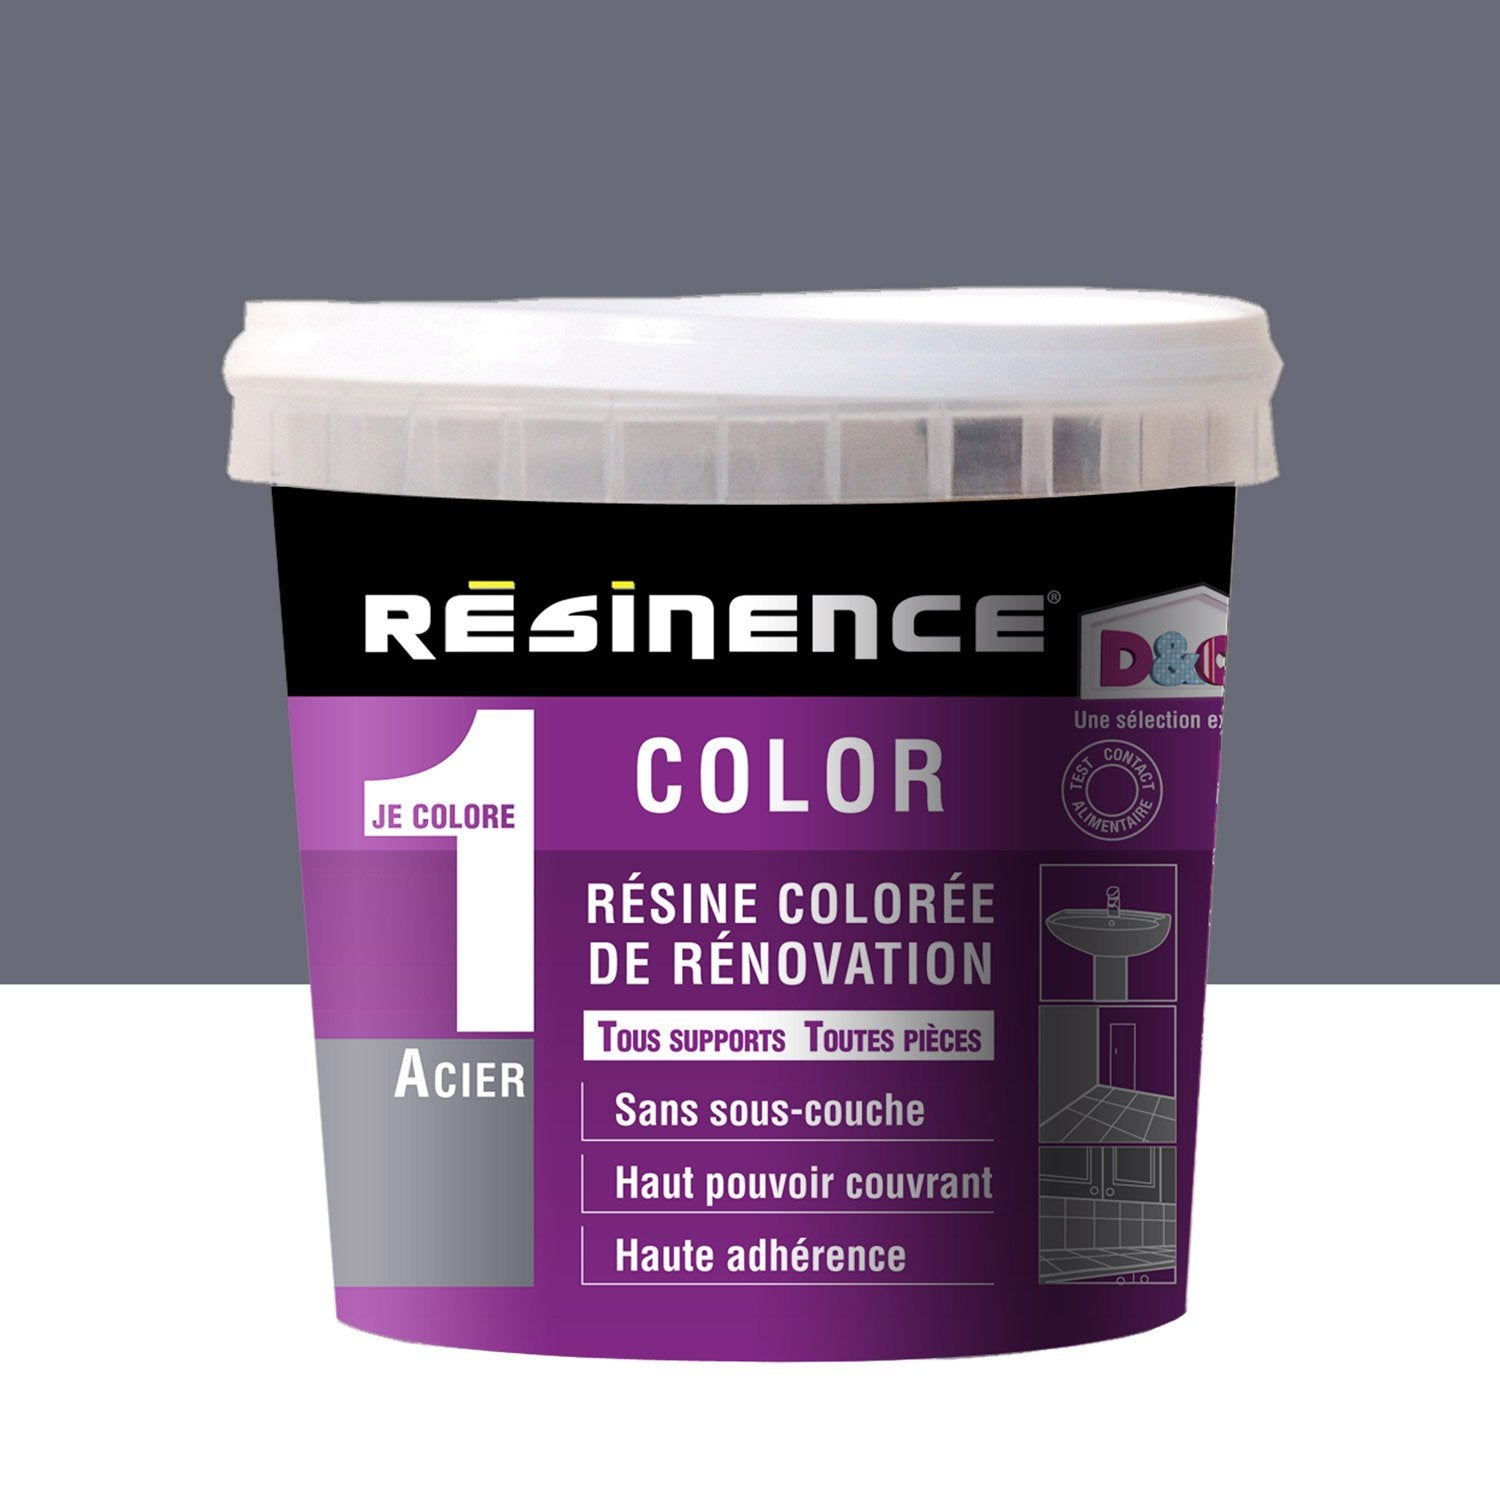 R sine color e color resinence gris acier m tallis for Peinture carrelage resinence